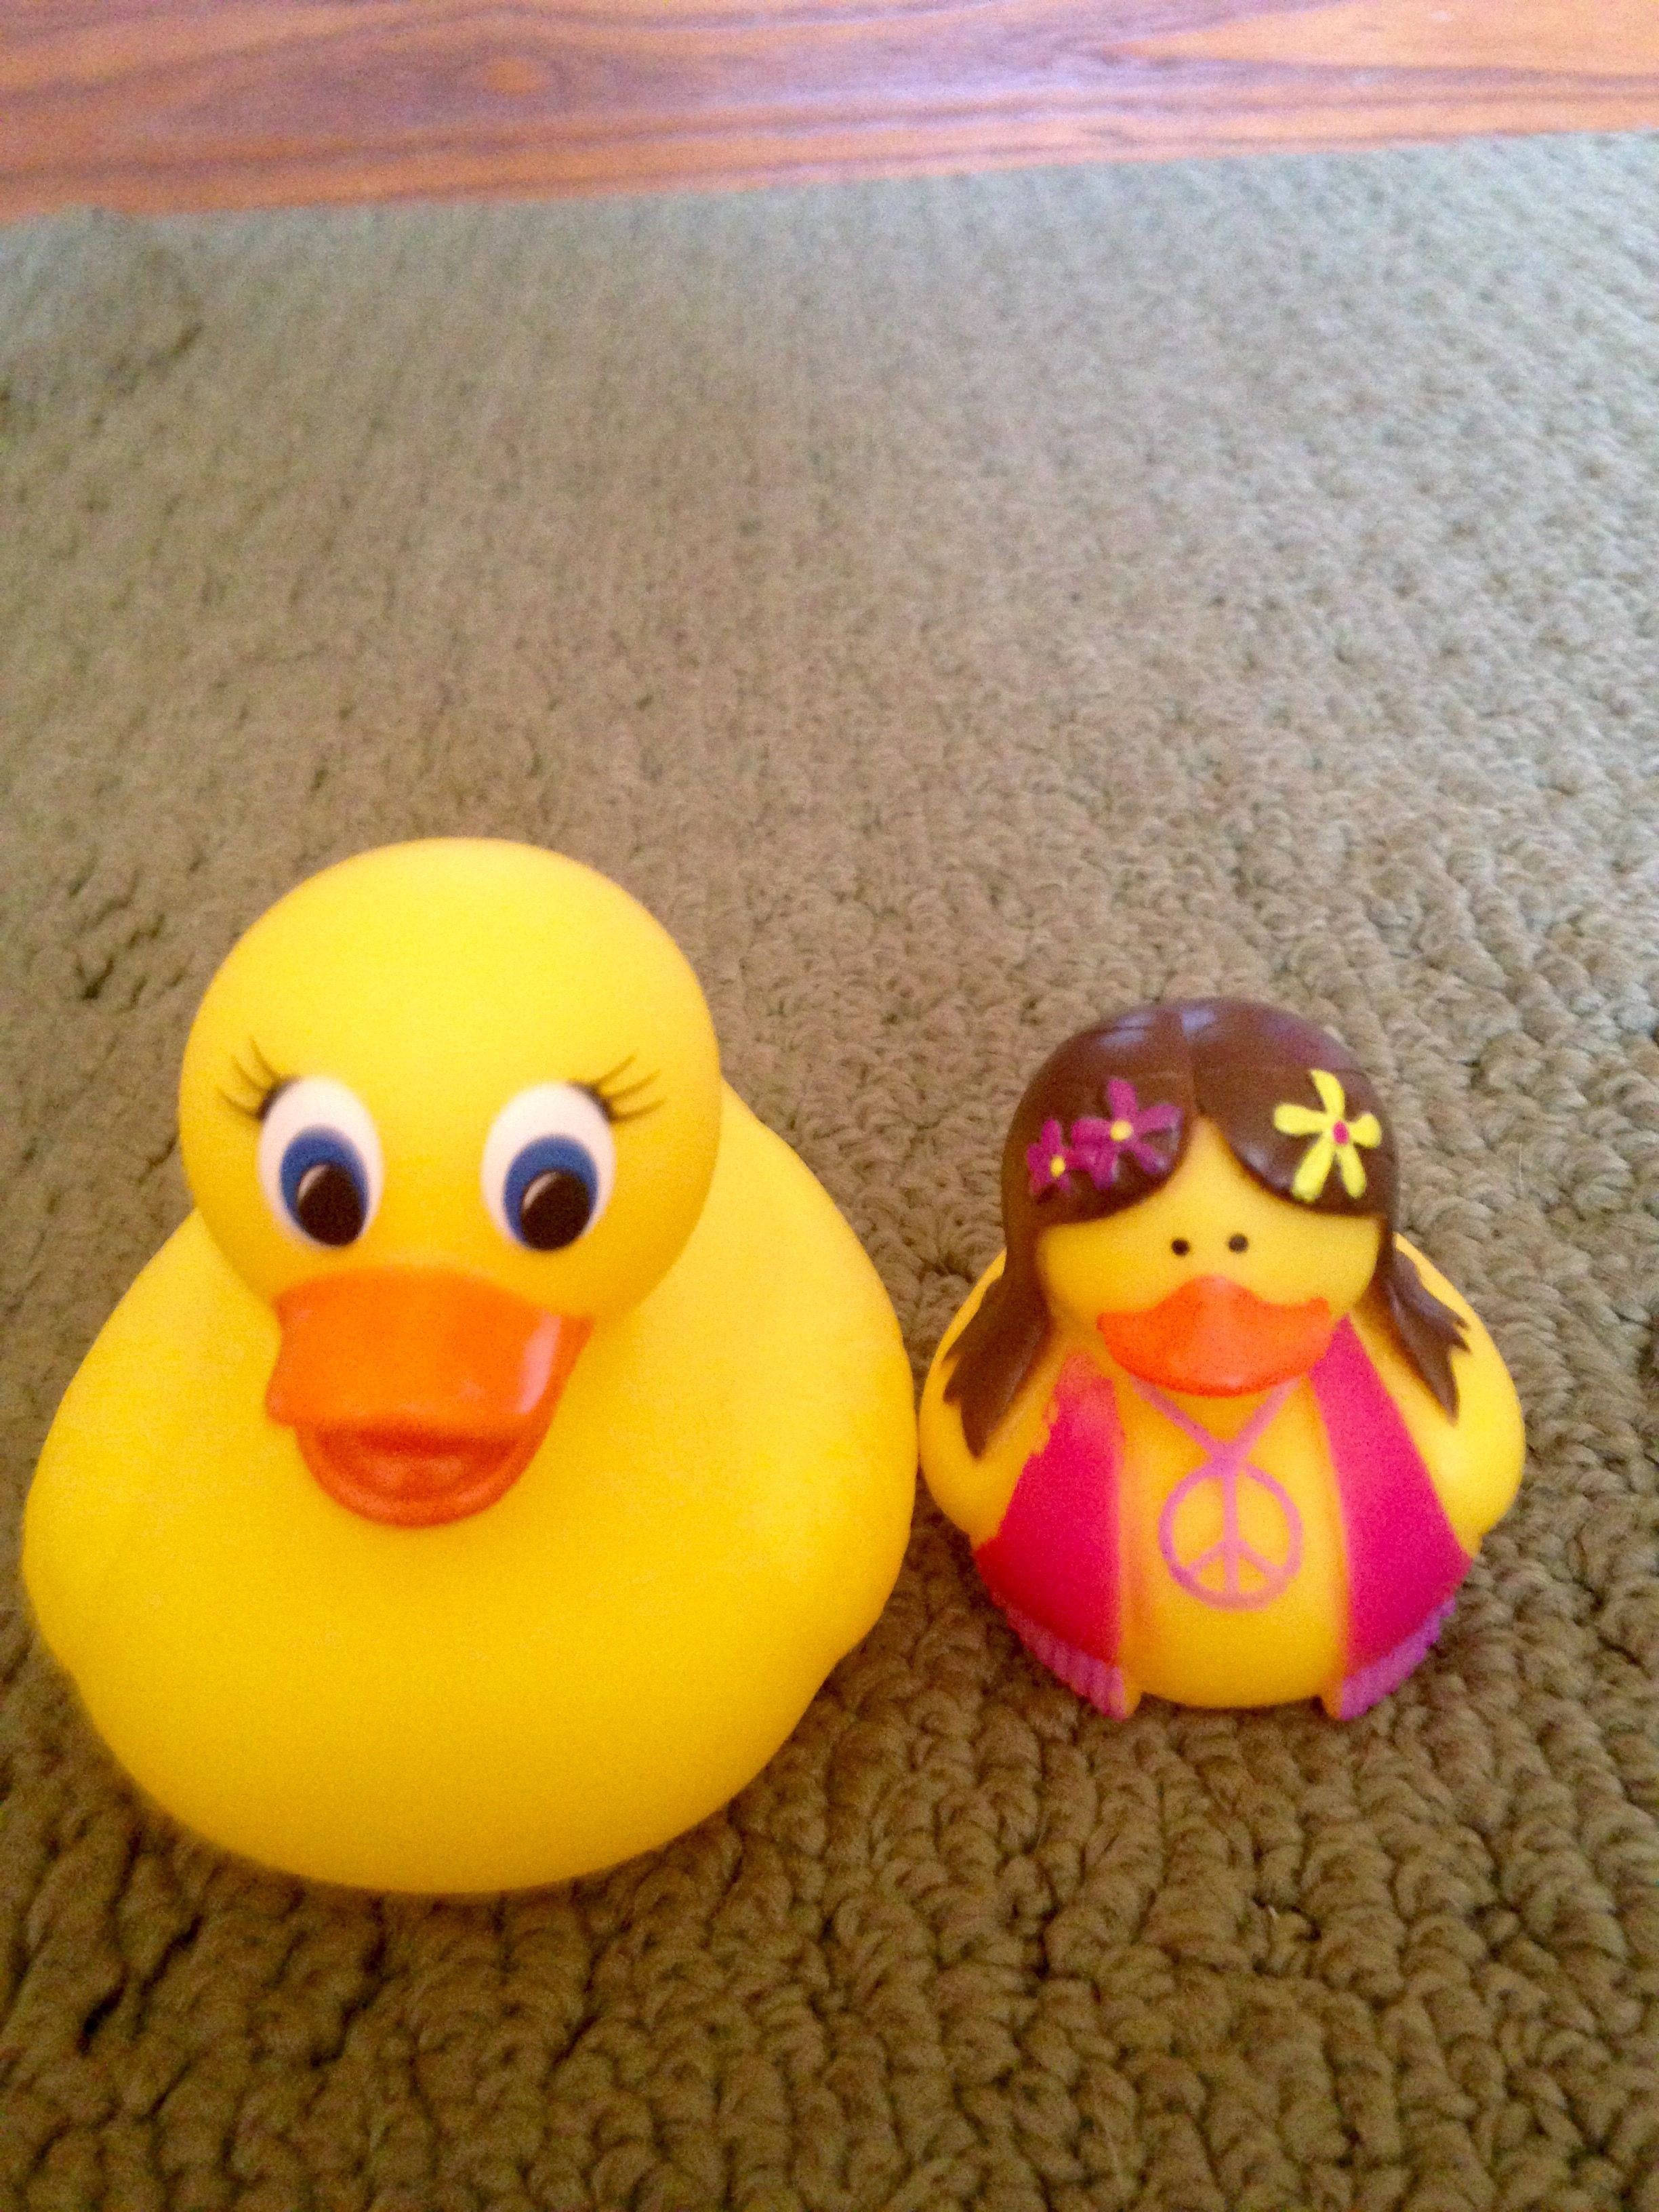 Pin by Meghan Padovano on Rubber ducks | Pinterest | Rubber duck